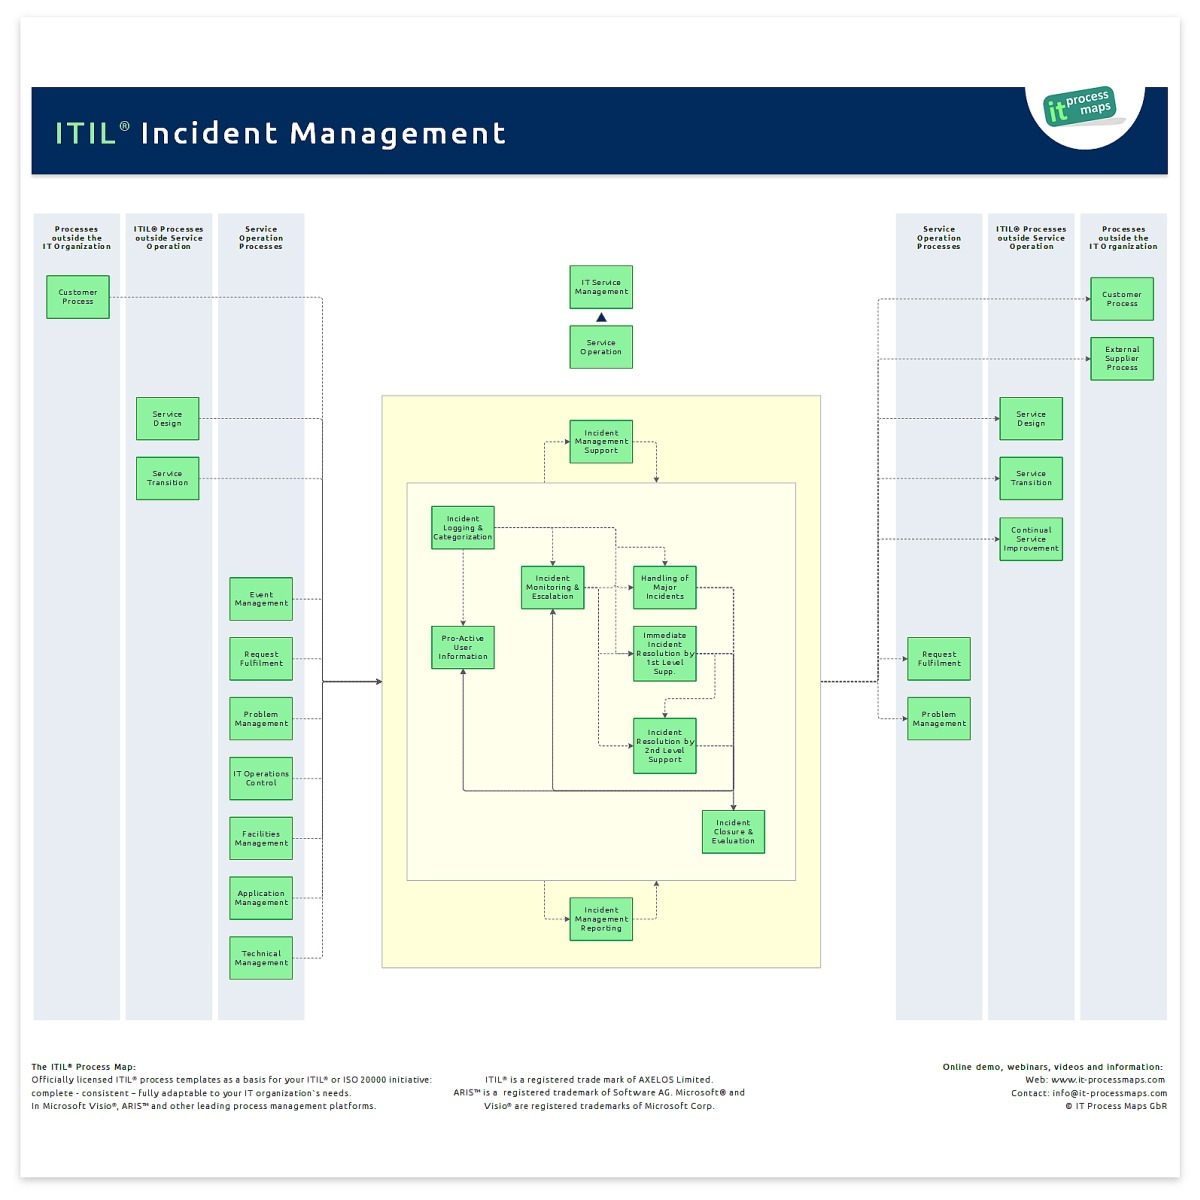 wikienit-processmaps images 7 73 Incident-management - performance improvement template